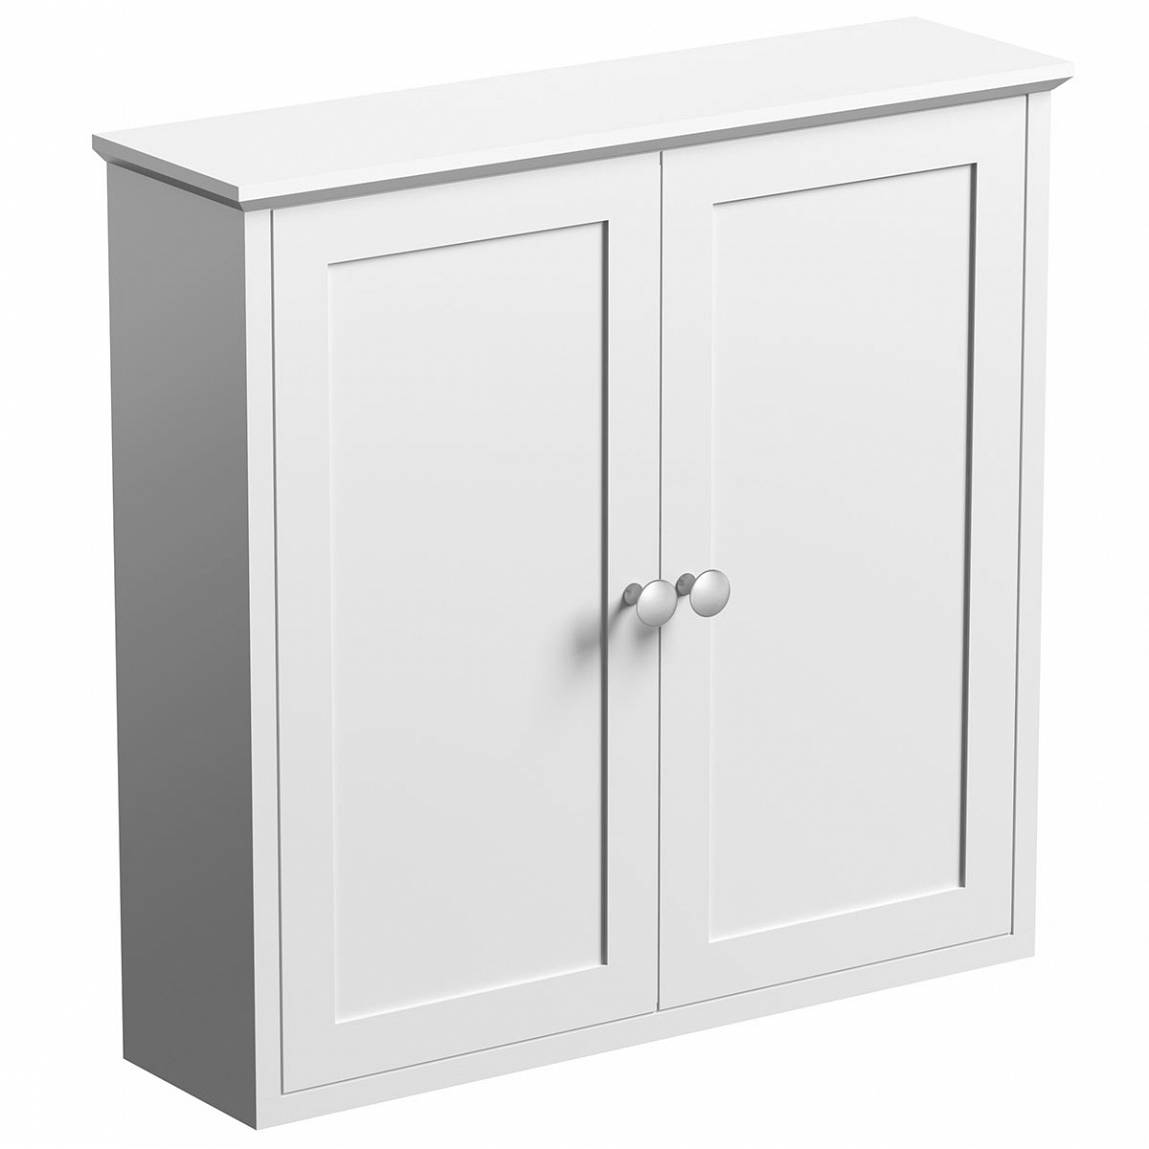 Image of Camberley White Wall Mounted Cabinet